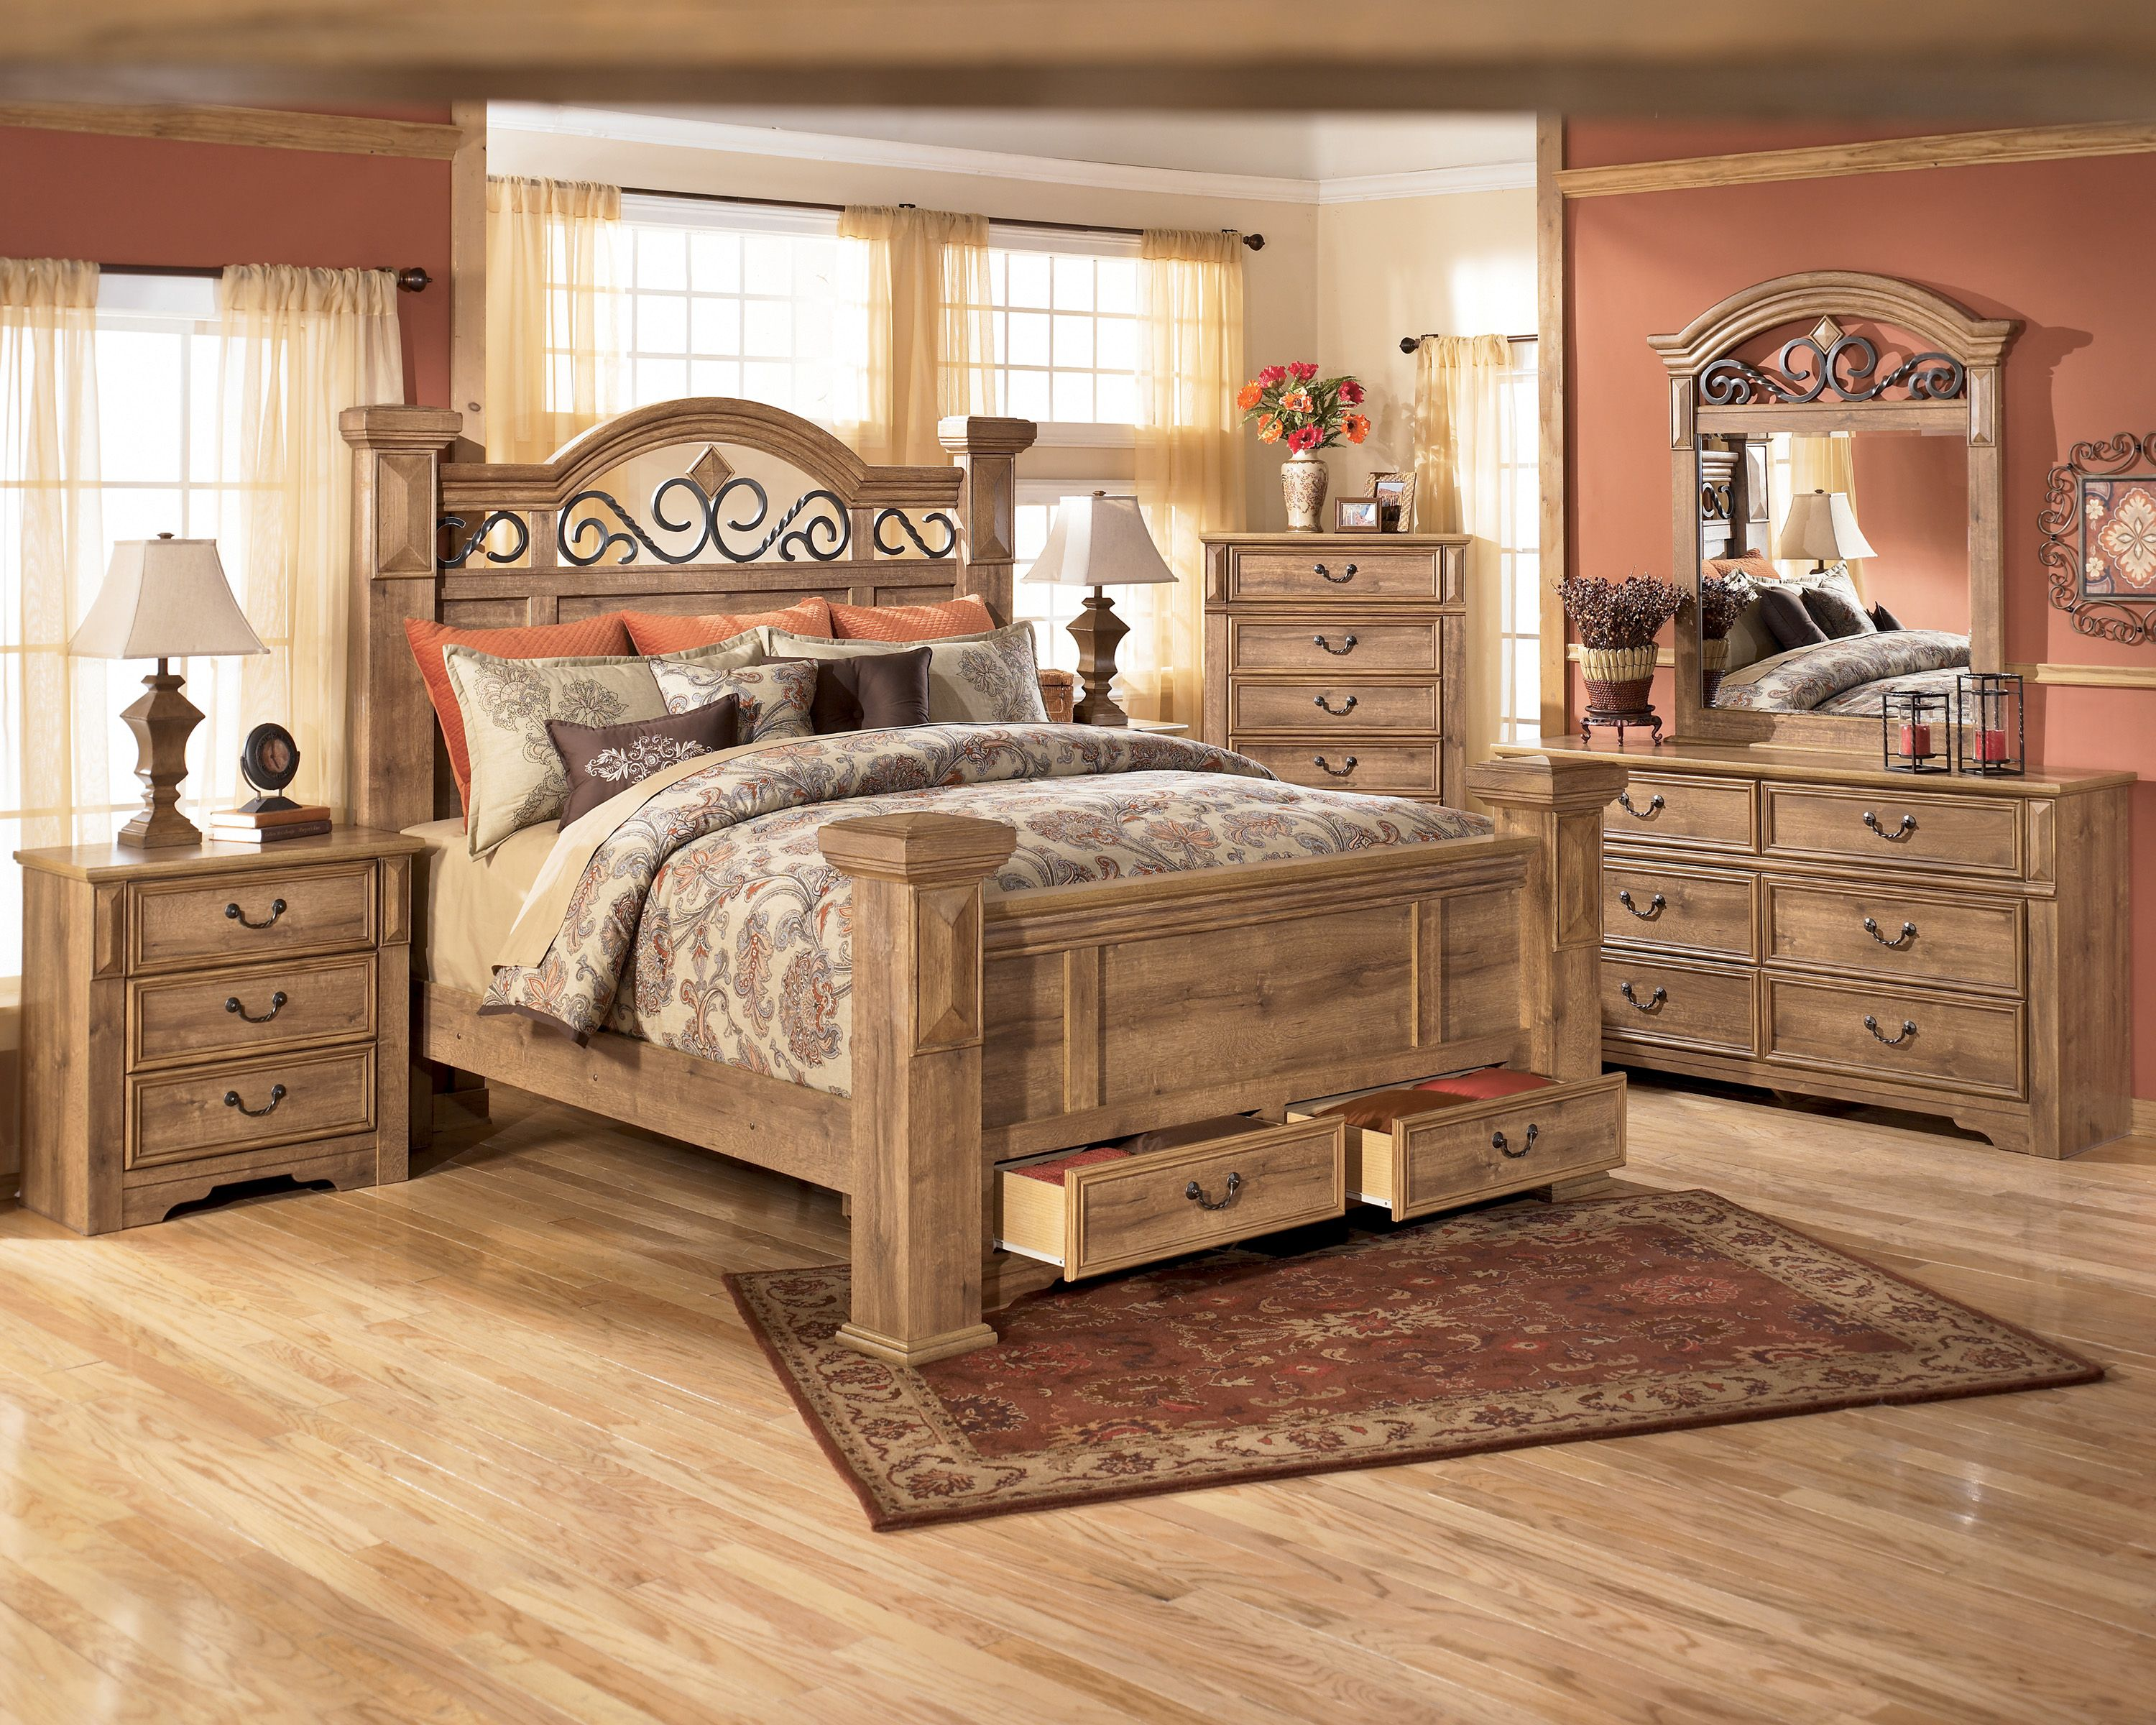 Best King Size Bed Set Rosalinda. Best 25  Bedroom furniture sets ideas on Pinterest   Bedroom